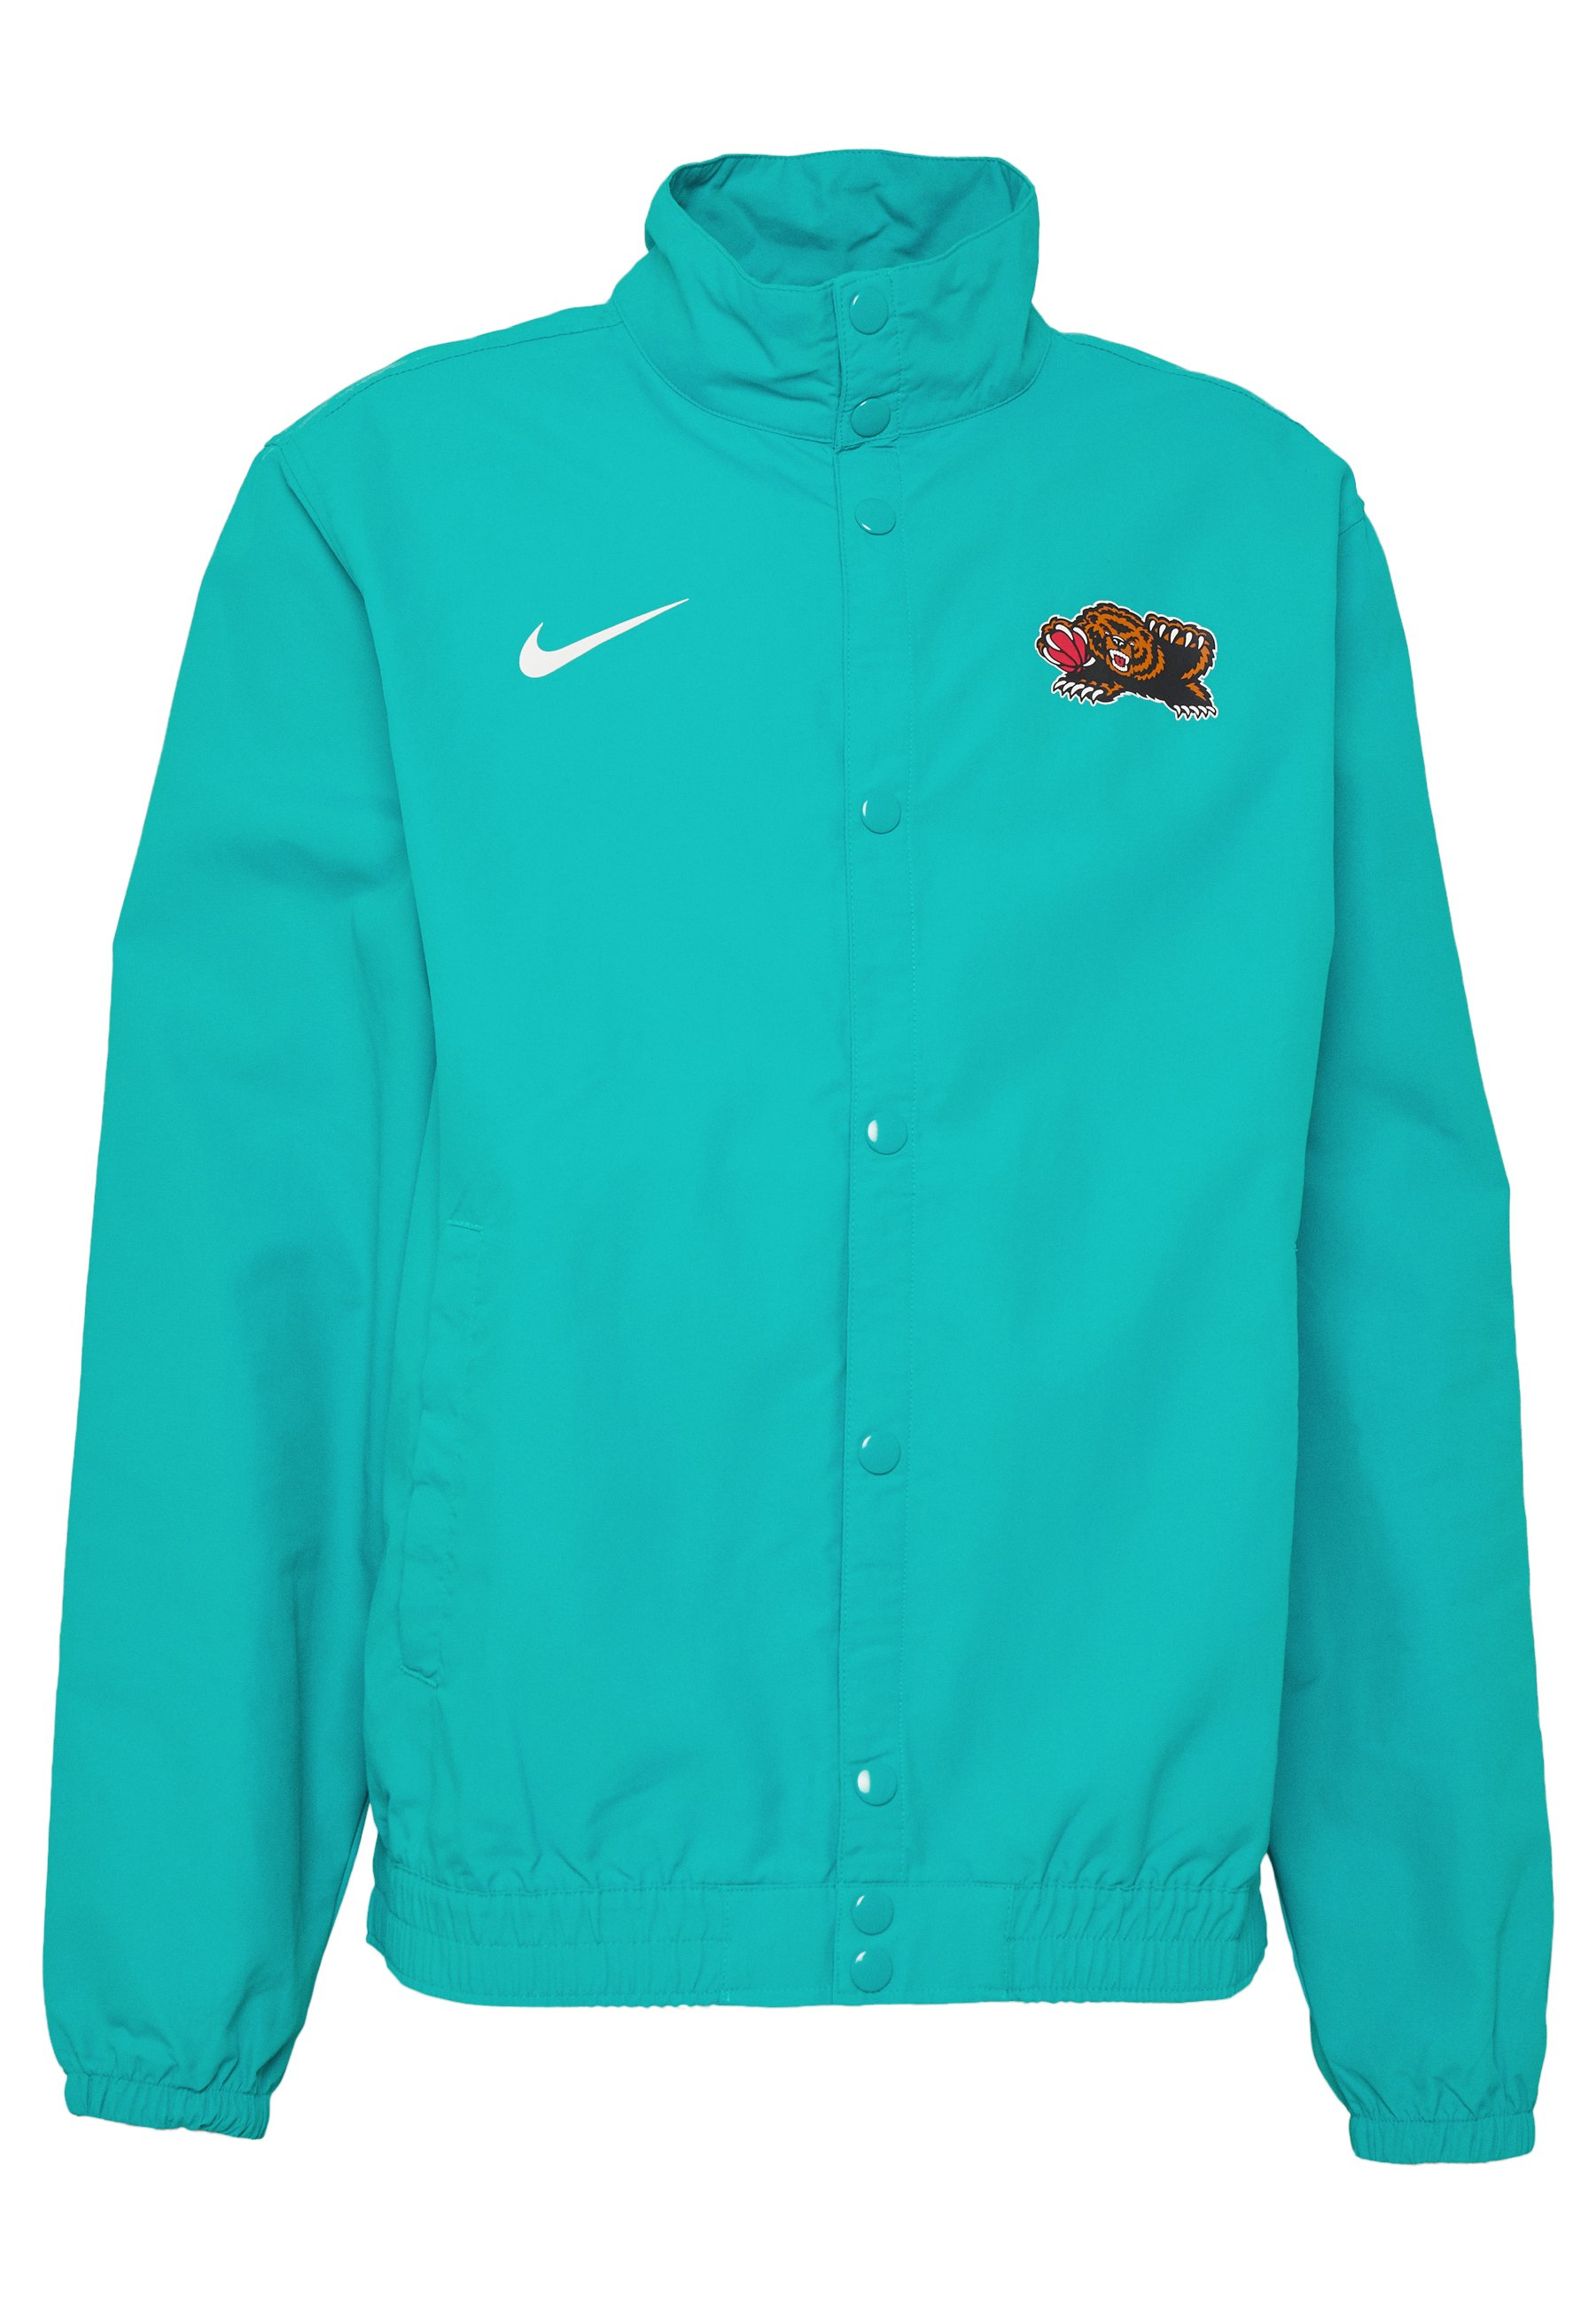 Nike Performance Nba Memphis Grizzlies City Edition Jacket - Article De Supporter Turbo Green/white